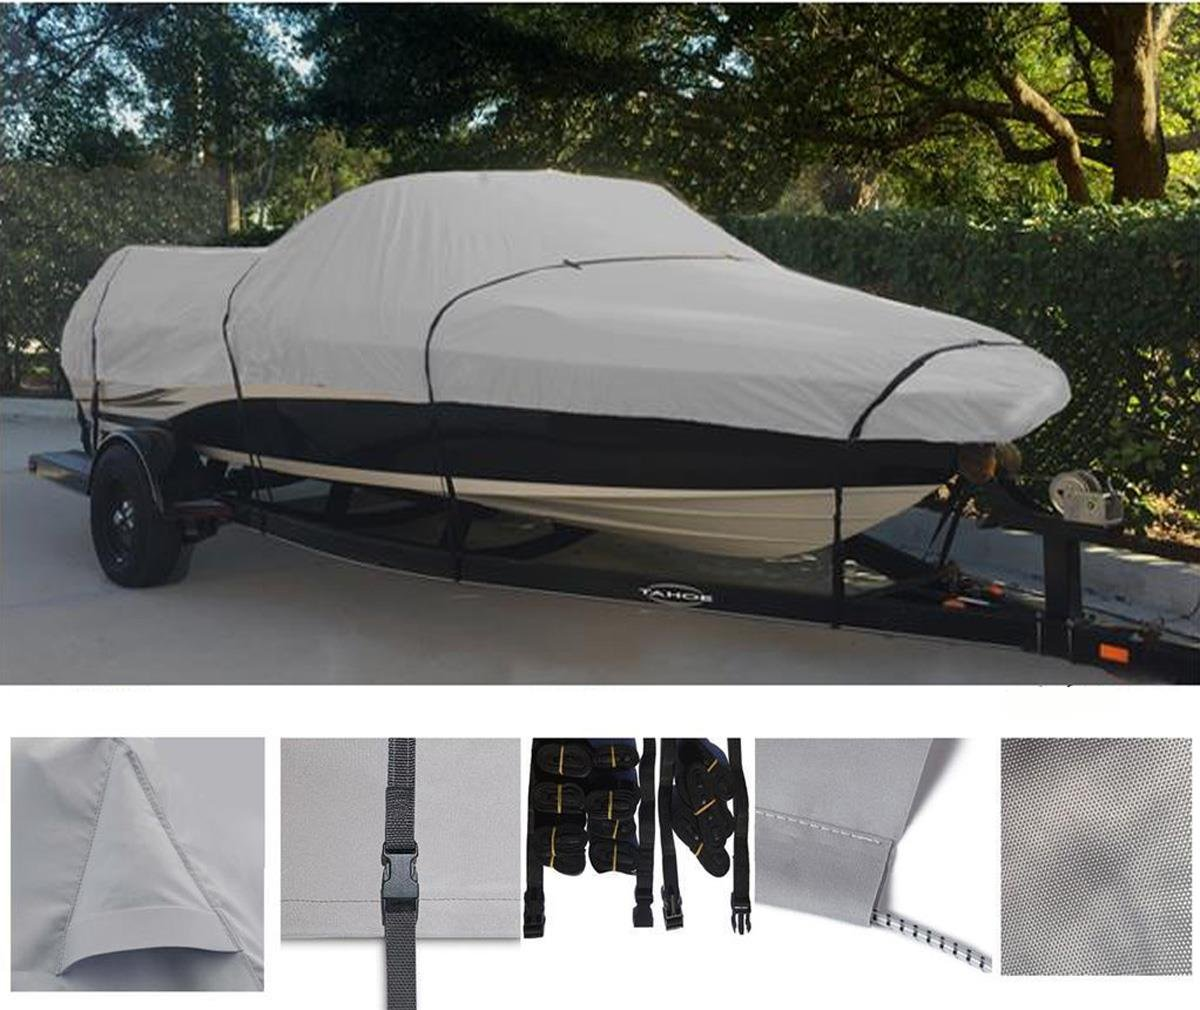 GREY, STORAGE, TRAVEL, MOORING BOAT COVER FOR Yamaha Exciter 270 Jet 1998 99